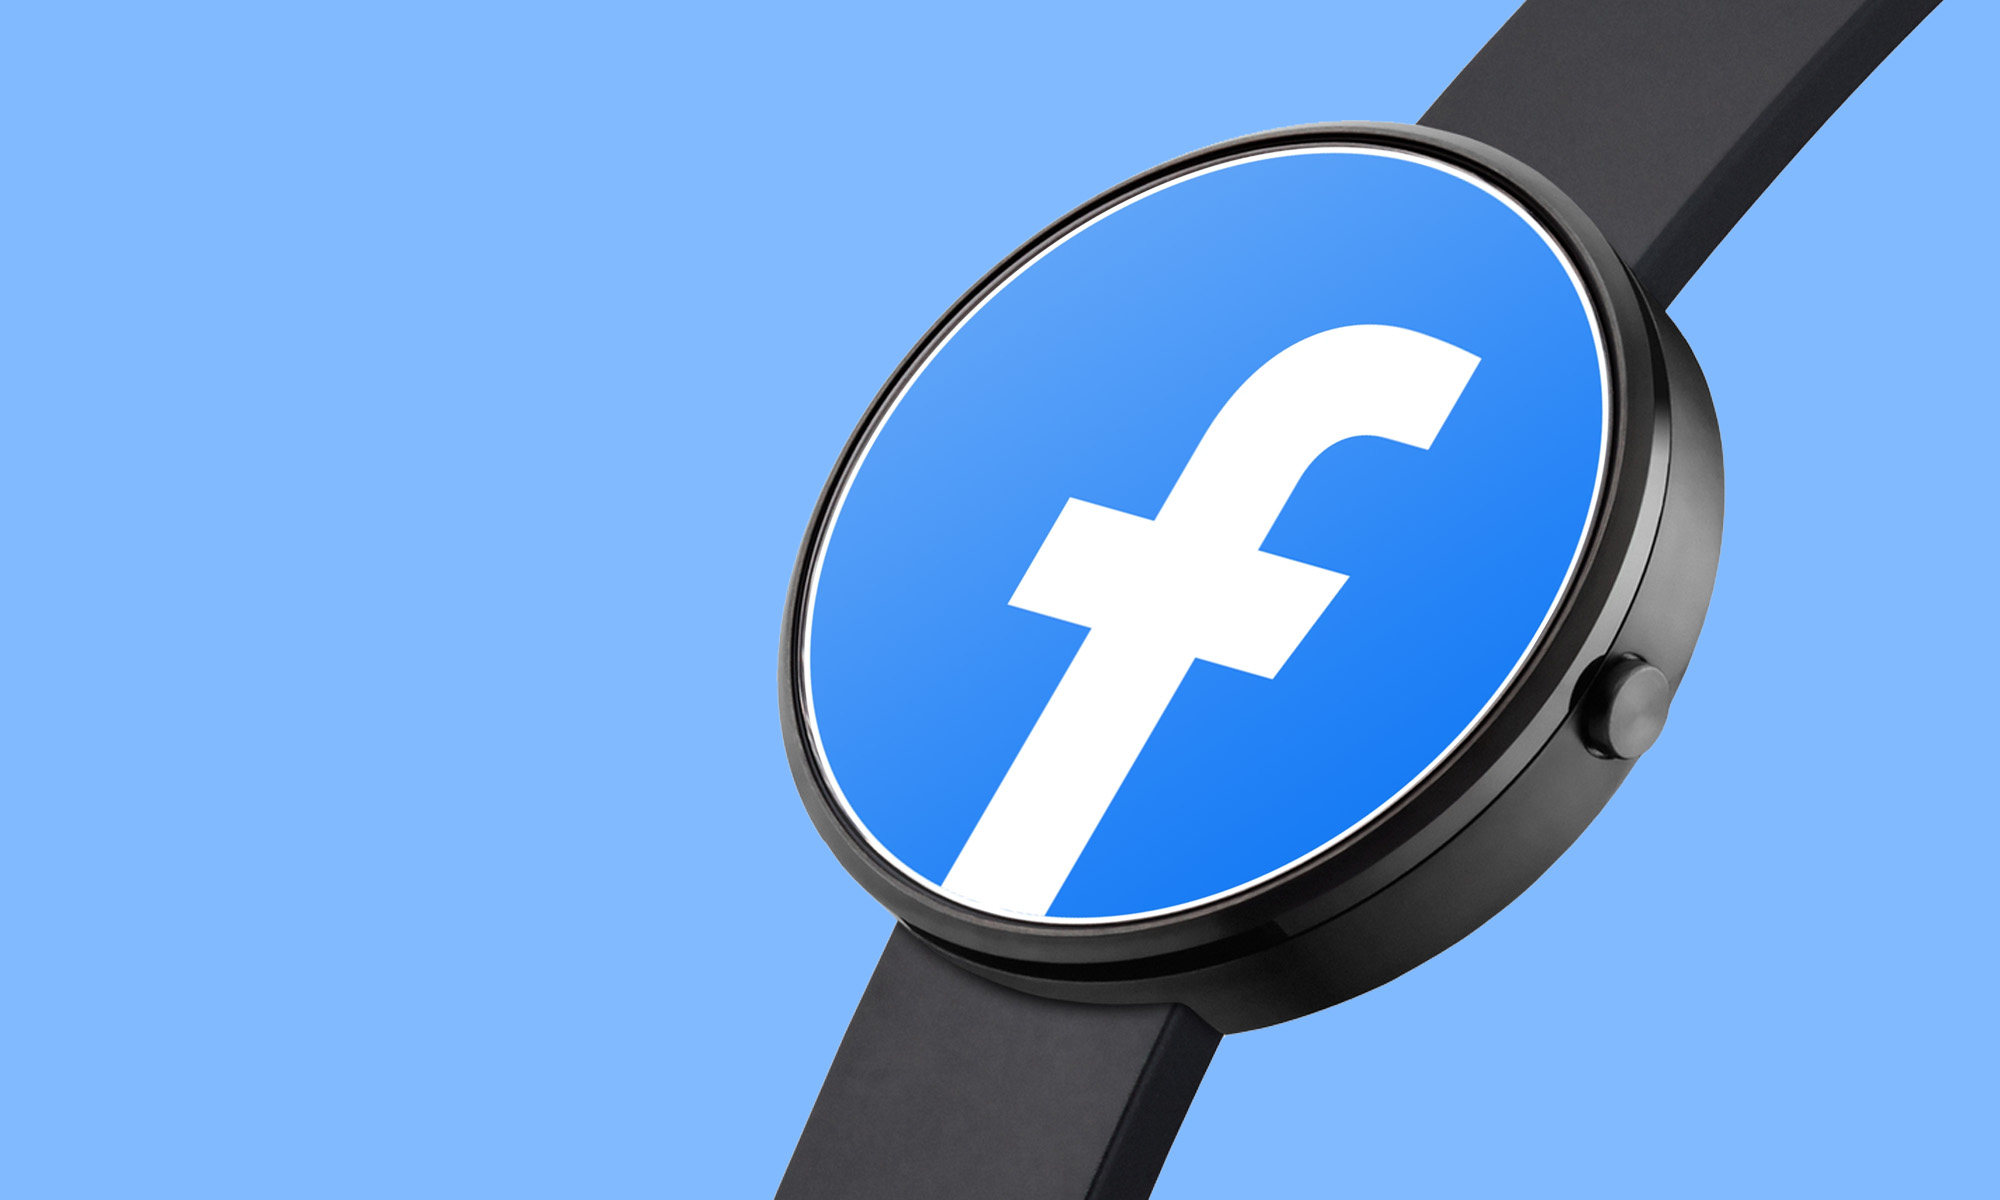 facebook is working on a smartwatch with messaging and health tracking capabilities